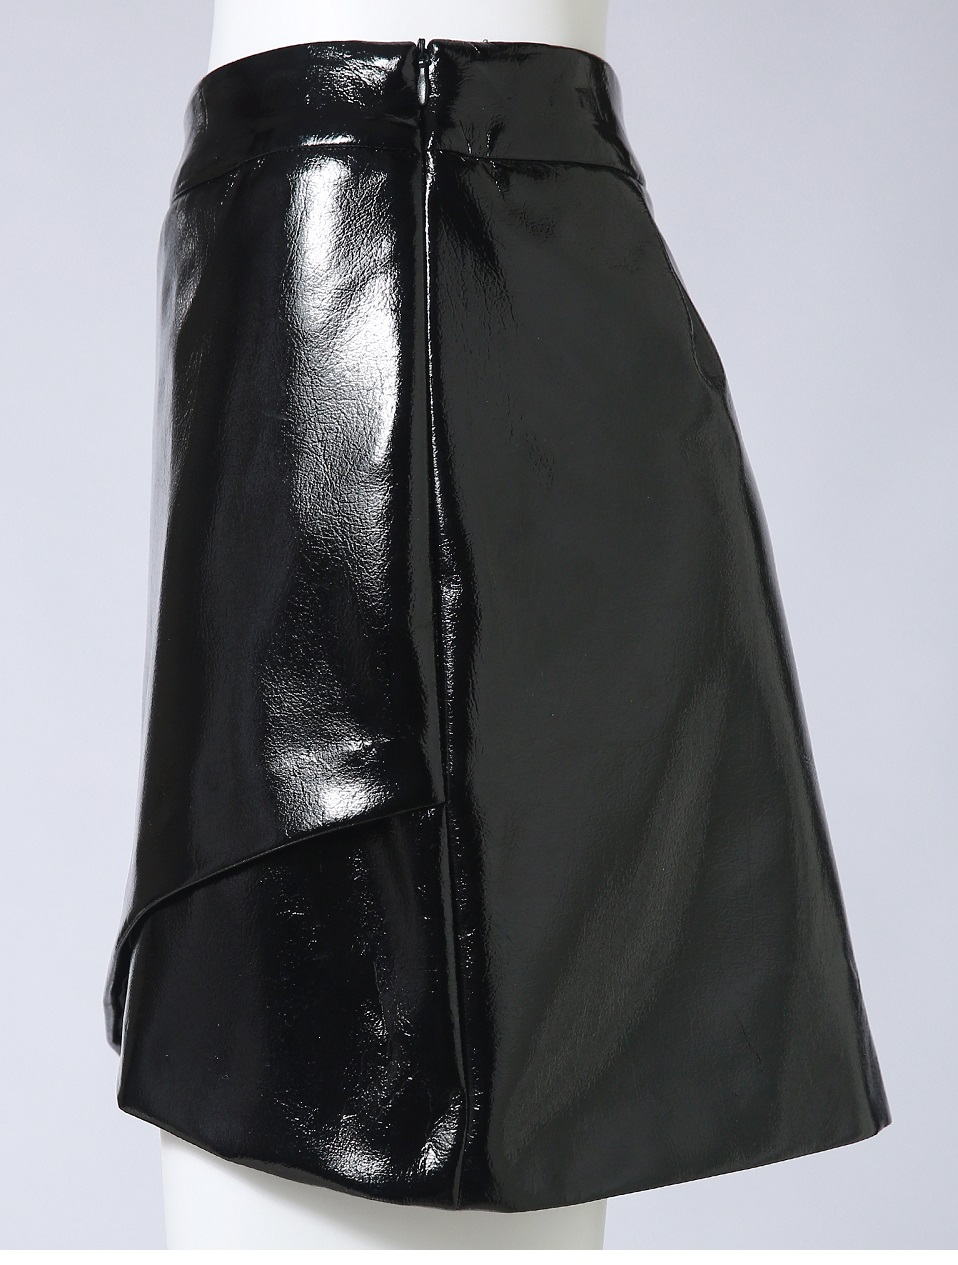 Autumn Winter Women Sexy Mini Skirt Black faux Patent Leather Female Short Pencil Skirt Zipper Fashion Streetwear Skirts Talever 11